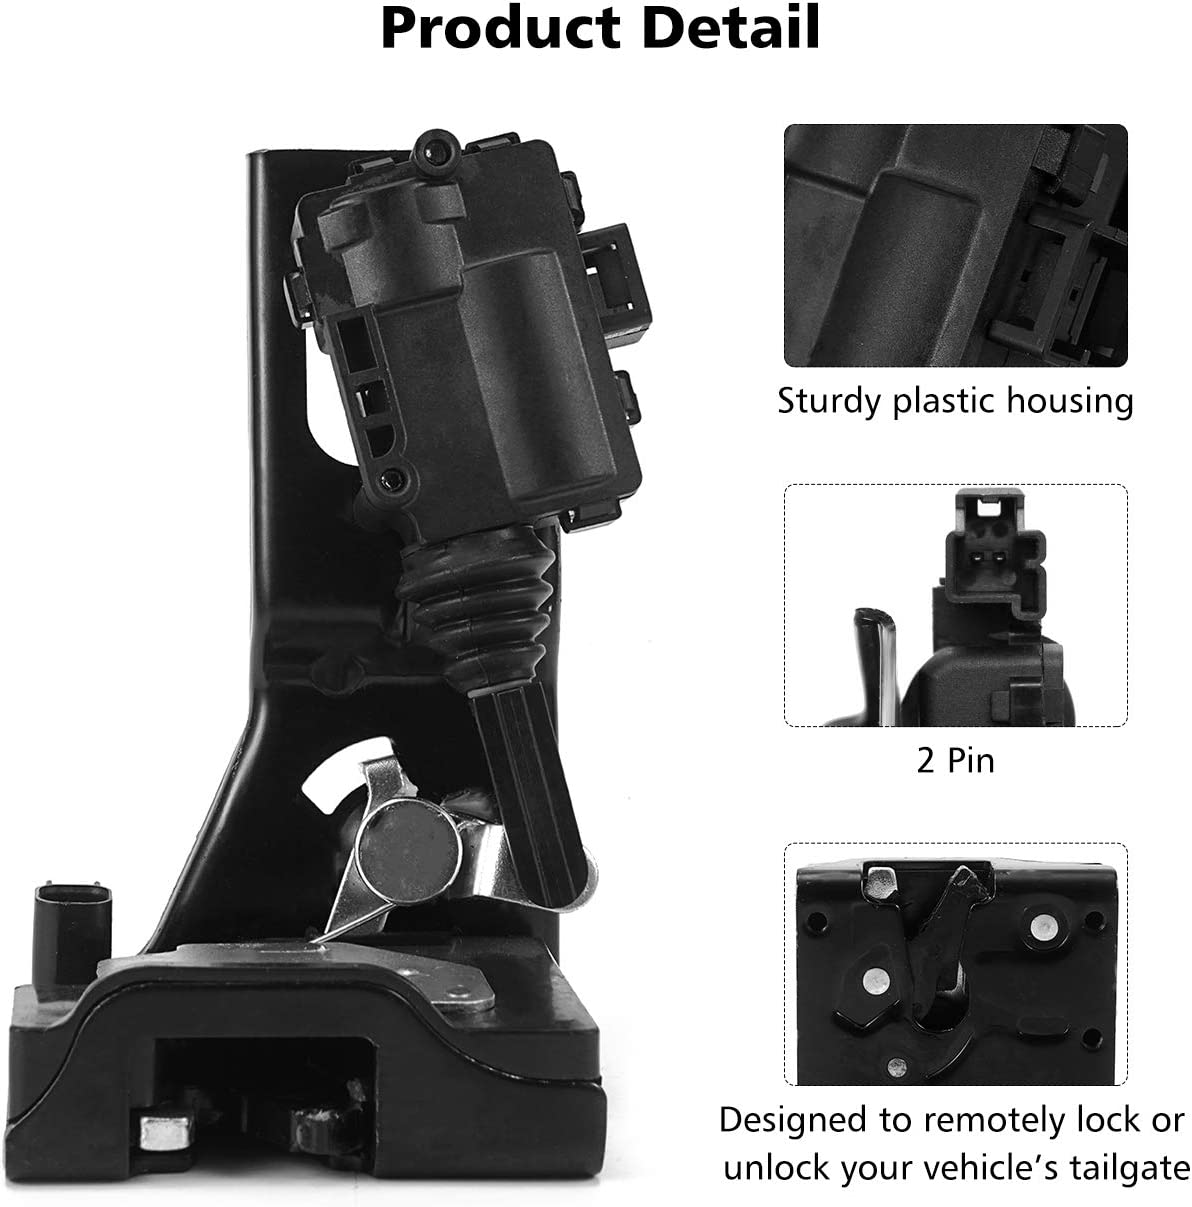 Mazda Tribute /& Mercury Mariner Model Years 2008-2012 Replaces OEM # 9L8Z843150B 937663 Partol Liftgate Actuator Rear Hatch Latch Lock Assembly Fits Ford Escape